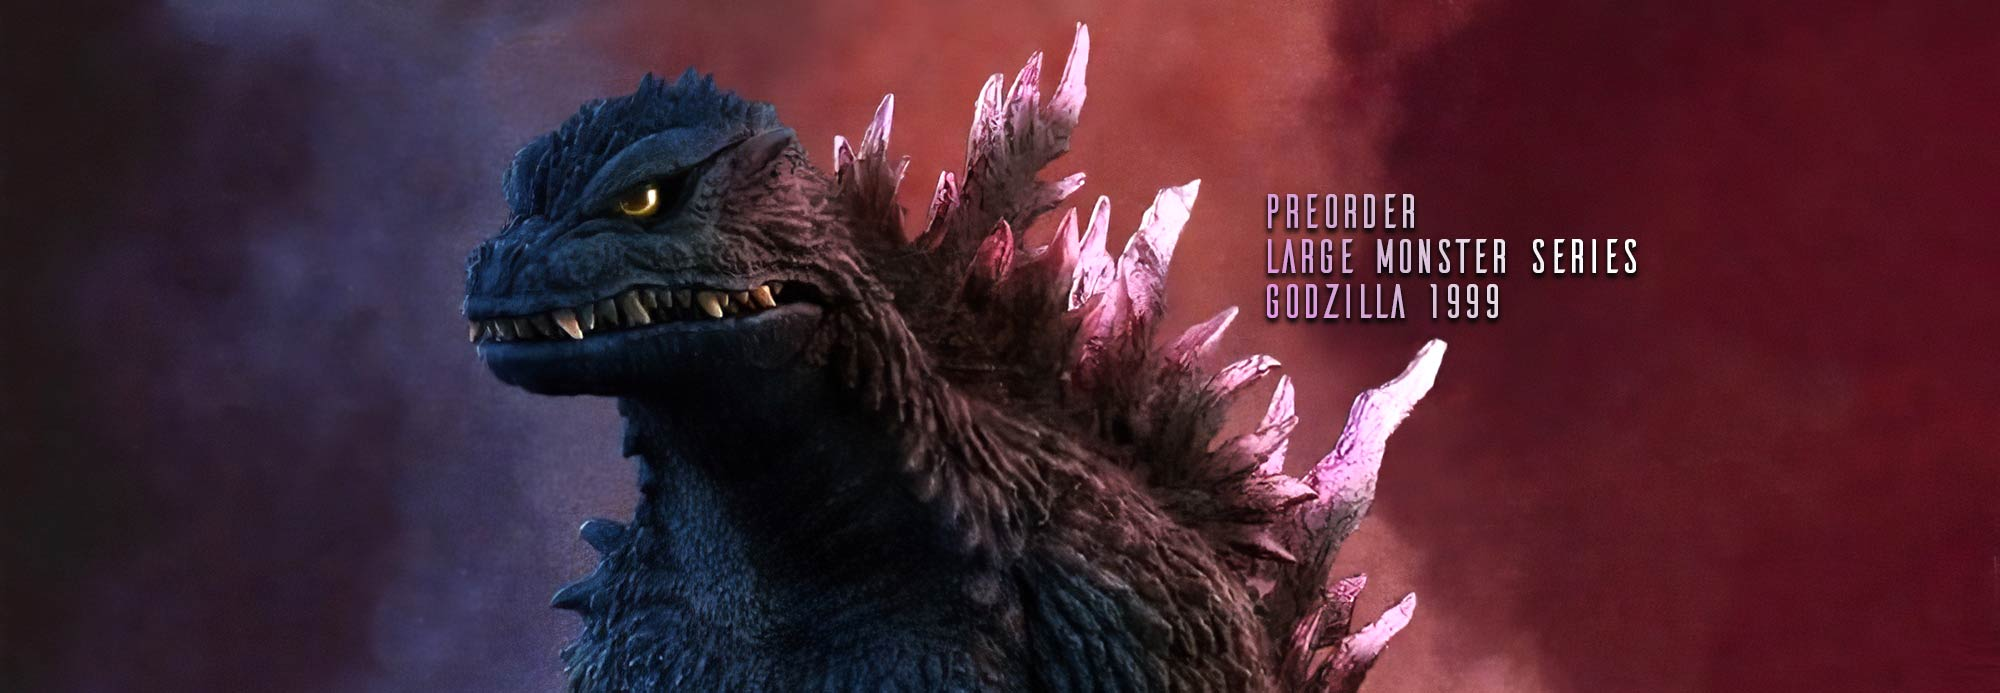 Preorders open for X-Plus Large Monster Series Godzilla 1999